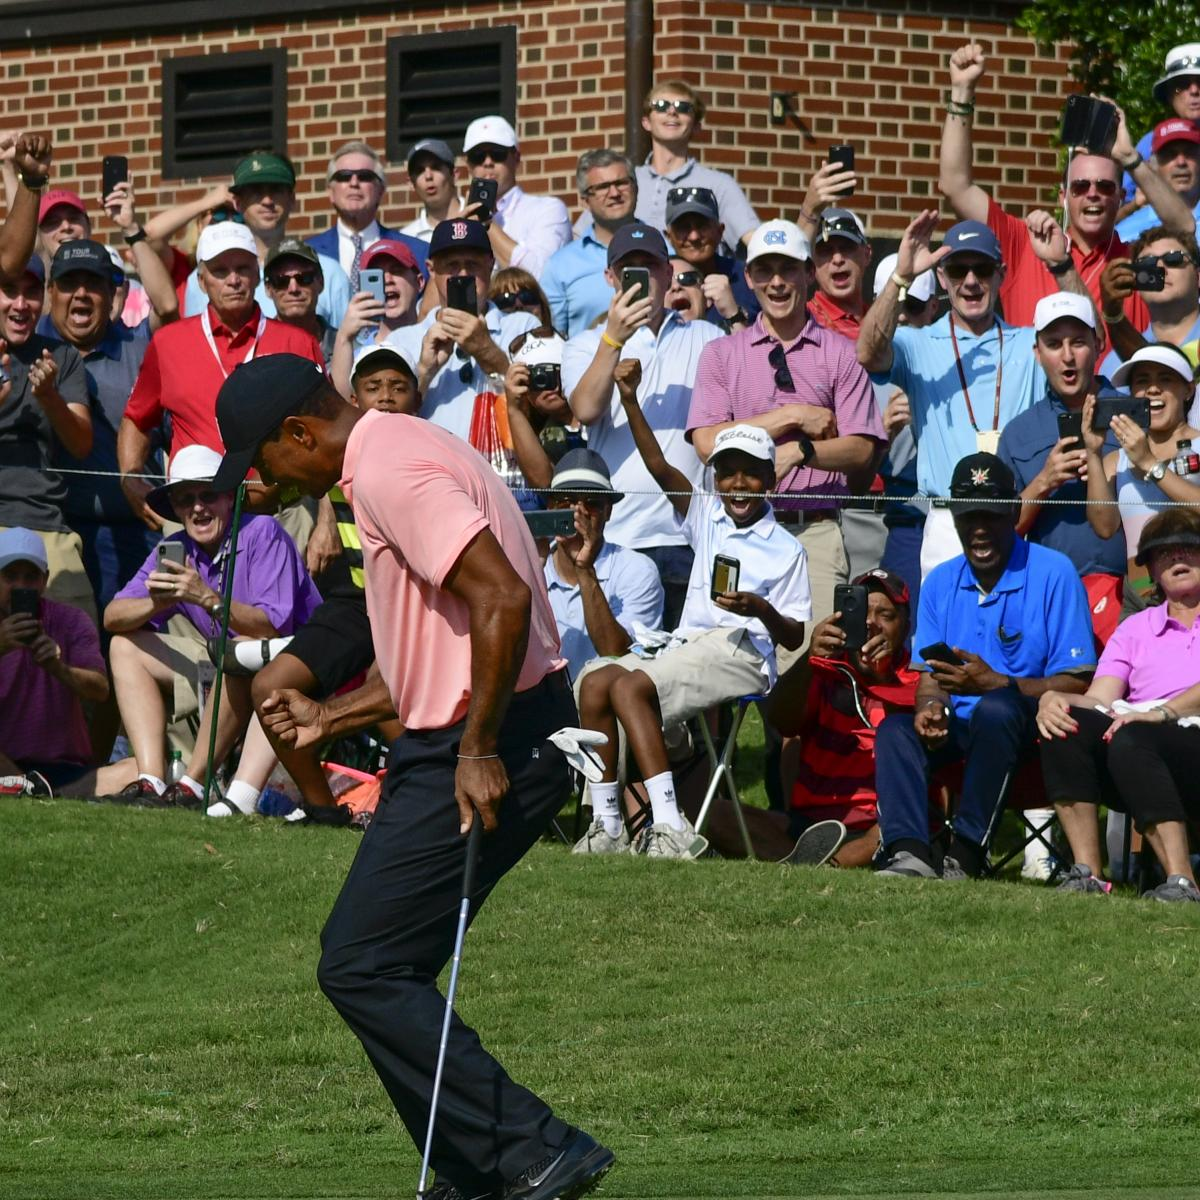 Tour Championship 2018: Tiger Woods, Rickie Fowler Lead After Round 1